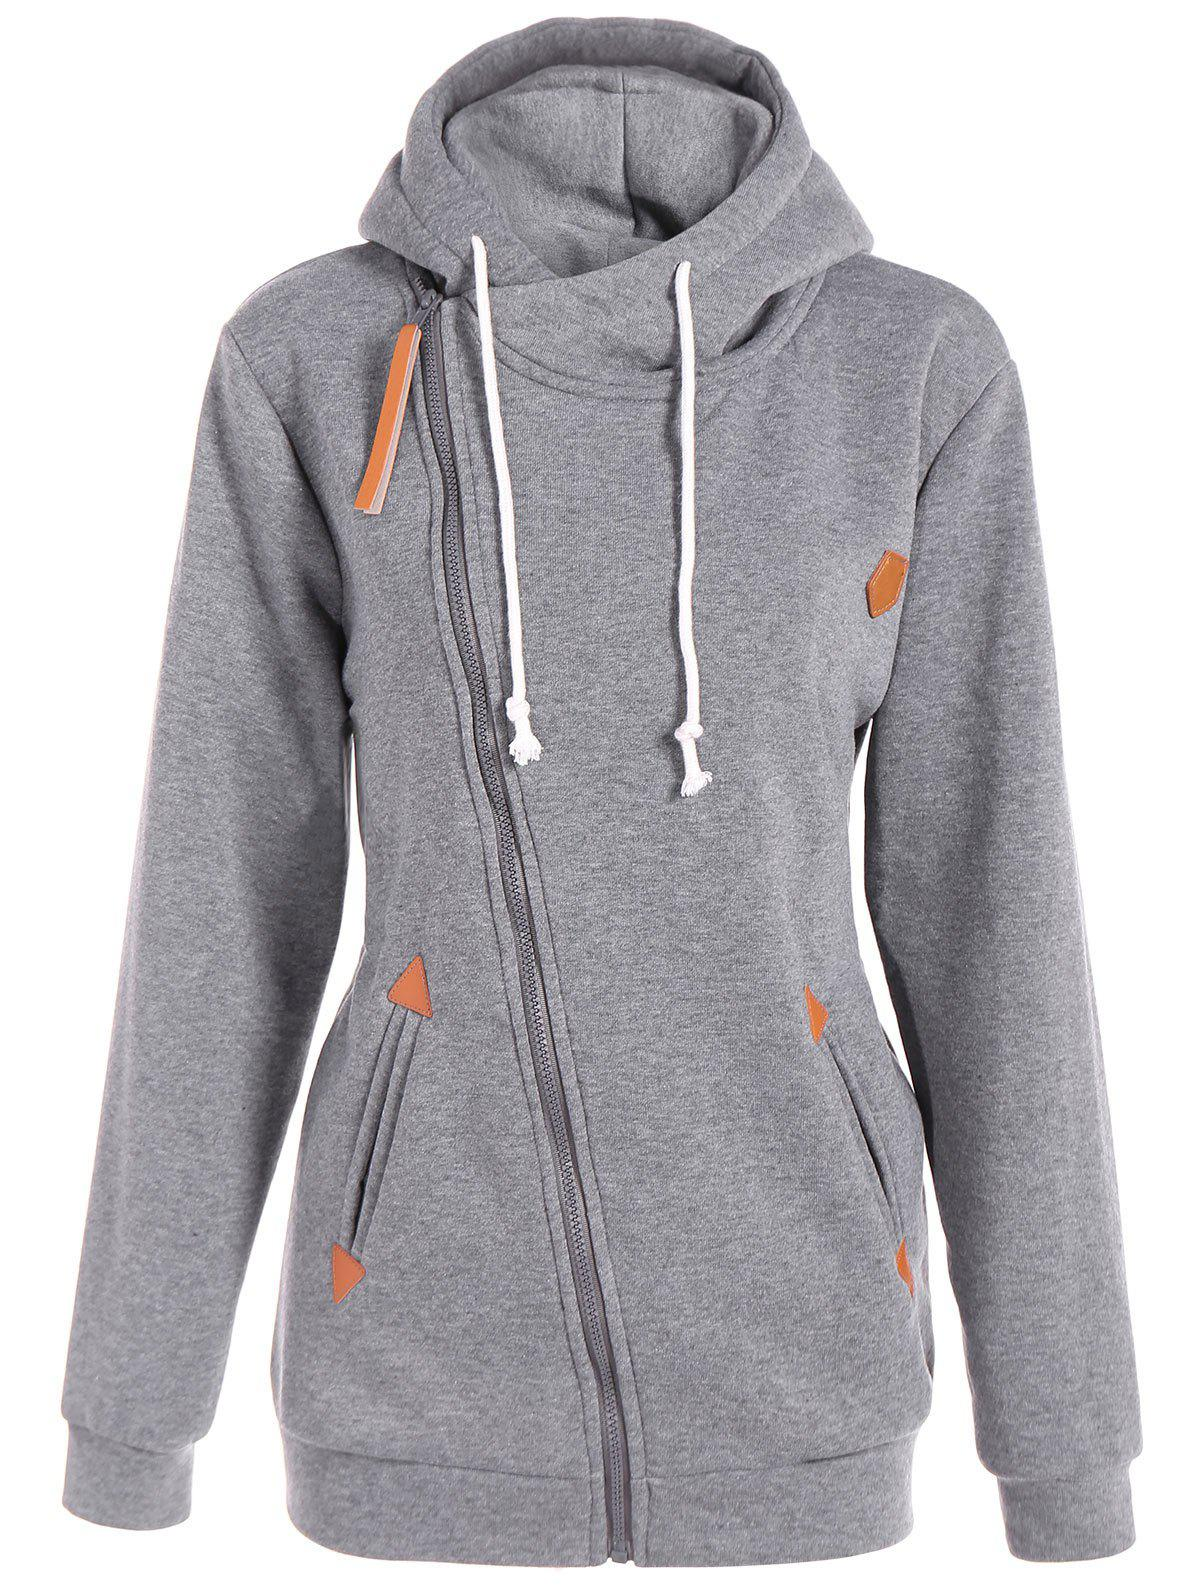 Inclined Zipper Drawstring Plus Size HoodieWOMEN<br><br>Size: XL; Color: GRAY; Material: Polyester; Shirt Length: Long; Sleeve Length: Full; Style: Casual; Pattern Style: Solid; Season: Fall,Spring; Weight: 0.500kg; Package Contents: 1 x Hoodie;